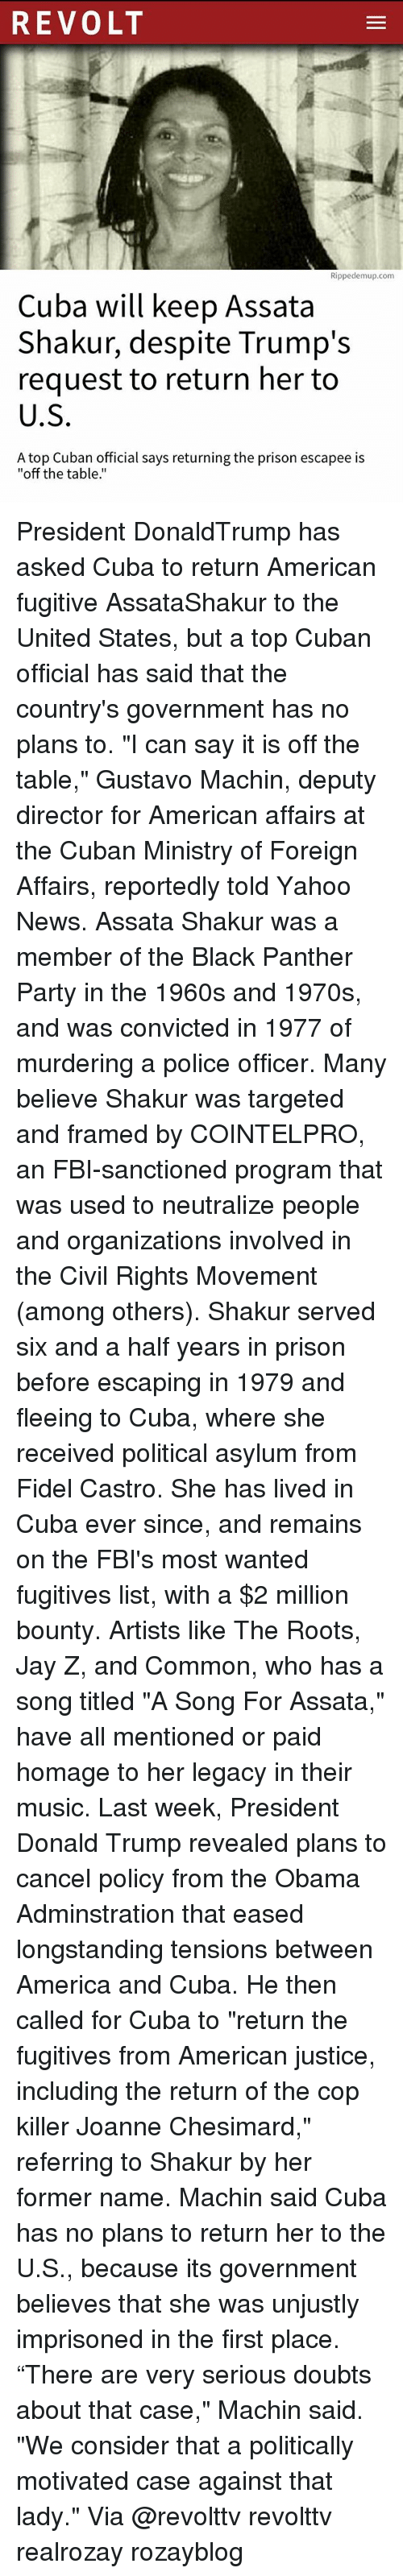 """Machining: REVOLT  Rippedemup.com  Cuba will keep Assata  Shakur, despite Trump's  request to return her to  U.S  A top Cuban official says returning the prison escapee is  """"off the table.' President DonaldTrump has asked Cuba to return American fugitive AssataShakur to the United States, but a top Cuban official has said that the country's government has no plans to. """"I can say it is off the table,"""" Gustavo Machin, deputy director for American affairs at the Cuban Ministry of Foreign Affairs, reportedly told Yahoo News. Assata Shakur was a member of the Black Panther Party in the 1960s and 1970s, and was convicted in 1977 of murdering a police officer. Many believe Shakur was targeted and framed by COINTELPRO, an FBI-sanctioned program that was used to neutralize people and organizations involved in the Civil Rights Movement (among others). Shakur served six and a half years in prison before escaping in 1979 and fleeing to Cuba, where she received political asylum from Fidel Castro. She has lived in Cuba ever since, and remains on the FBI's most wanted fugitives list, with a $2 million bounty. Artists like The Roots, Jay Z, and Common, who has a song titled """"A Song For Assata,"""" have all mentioned or paid homage to her legacy in their music. Last week, President Donald Trump revealed plans to cancel policy from the Obama Adminstration that eased longstanding tensions between America and Cuba. He then called for Cuba to """"return the fugitives from American justice, including the return of the cop killer Joanne Chesimard,"""" referring to Shakur by her former name. Machin said Cuba has no plans to return her to the U.S., because its government believes that she was unjustly imprisoned in the first place. """"There are very serious doubts about that case,"""" Machin said. """"We consider that a politically motivated case against that lady."""" Via @revolttv revolttv realrozay rozayblog"""